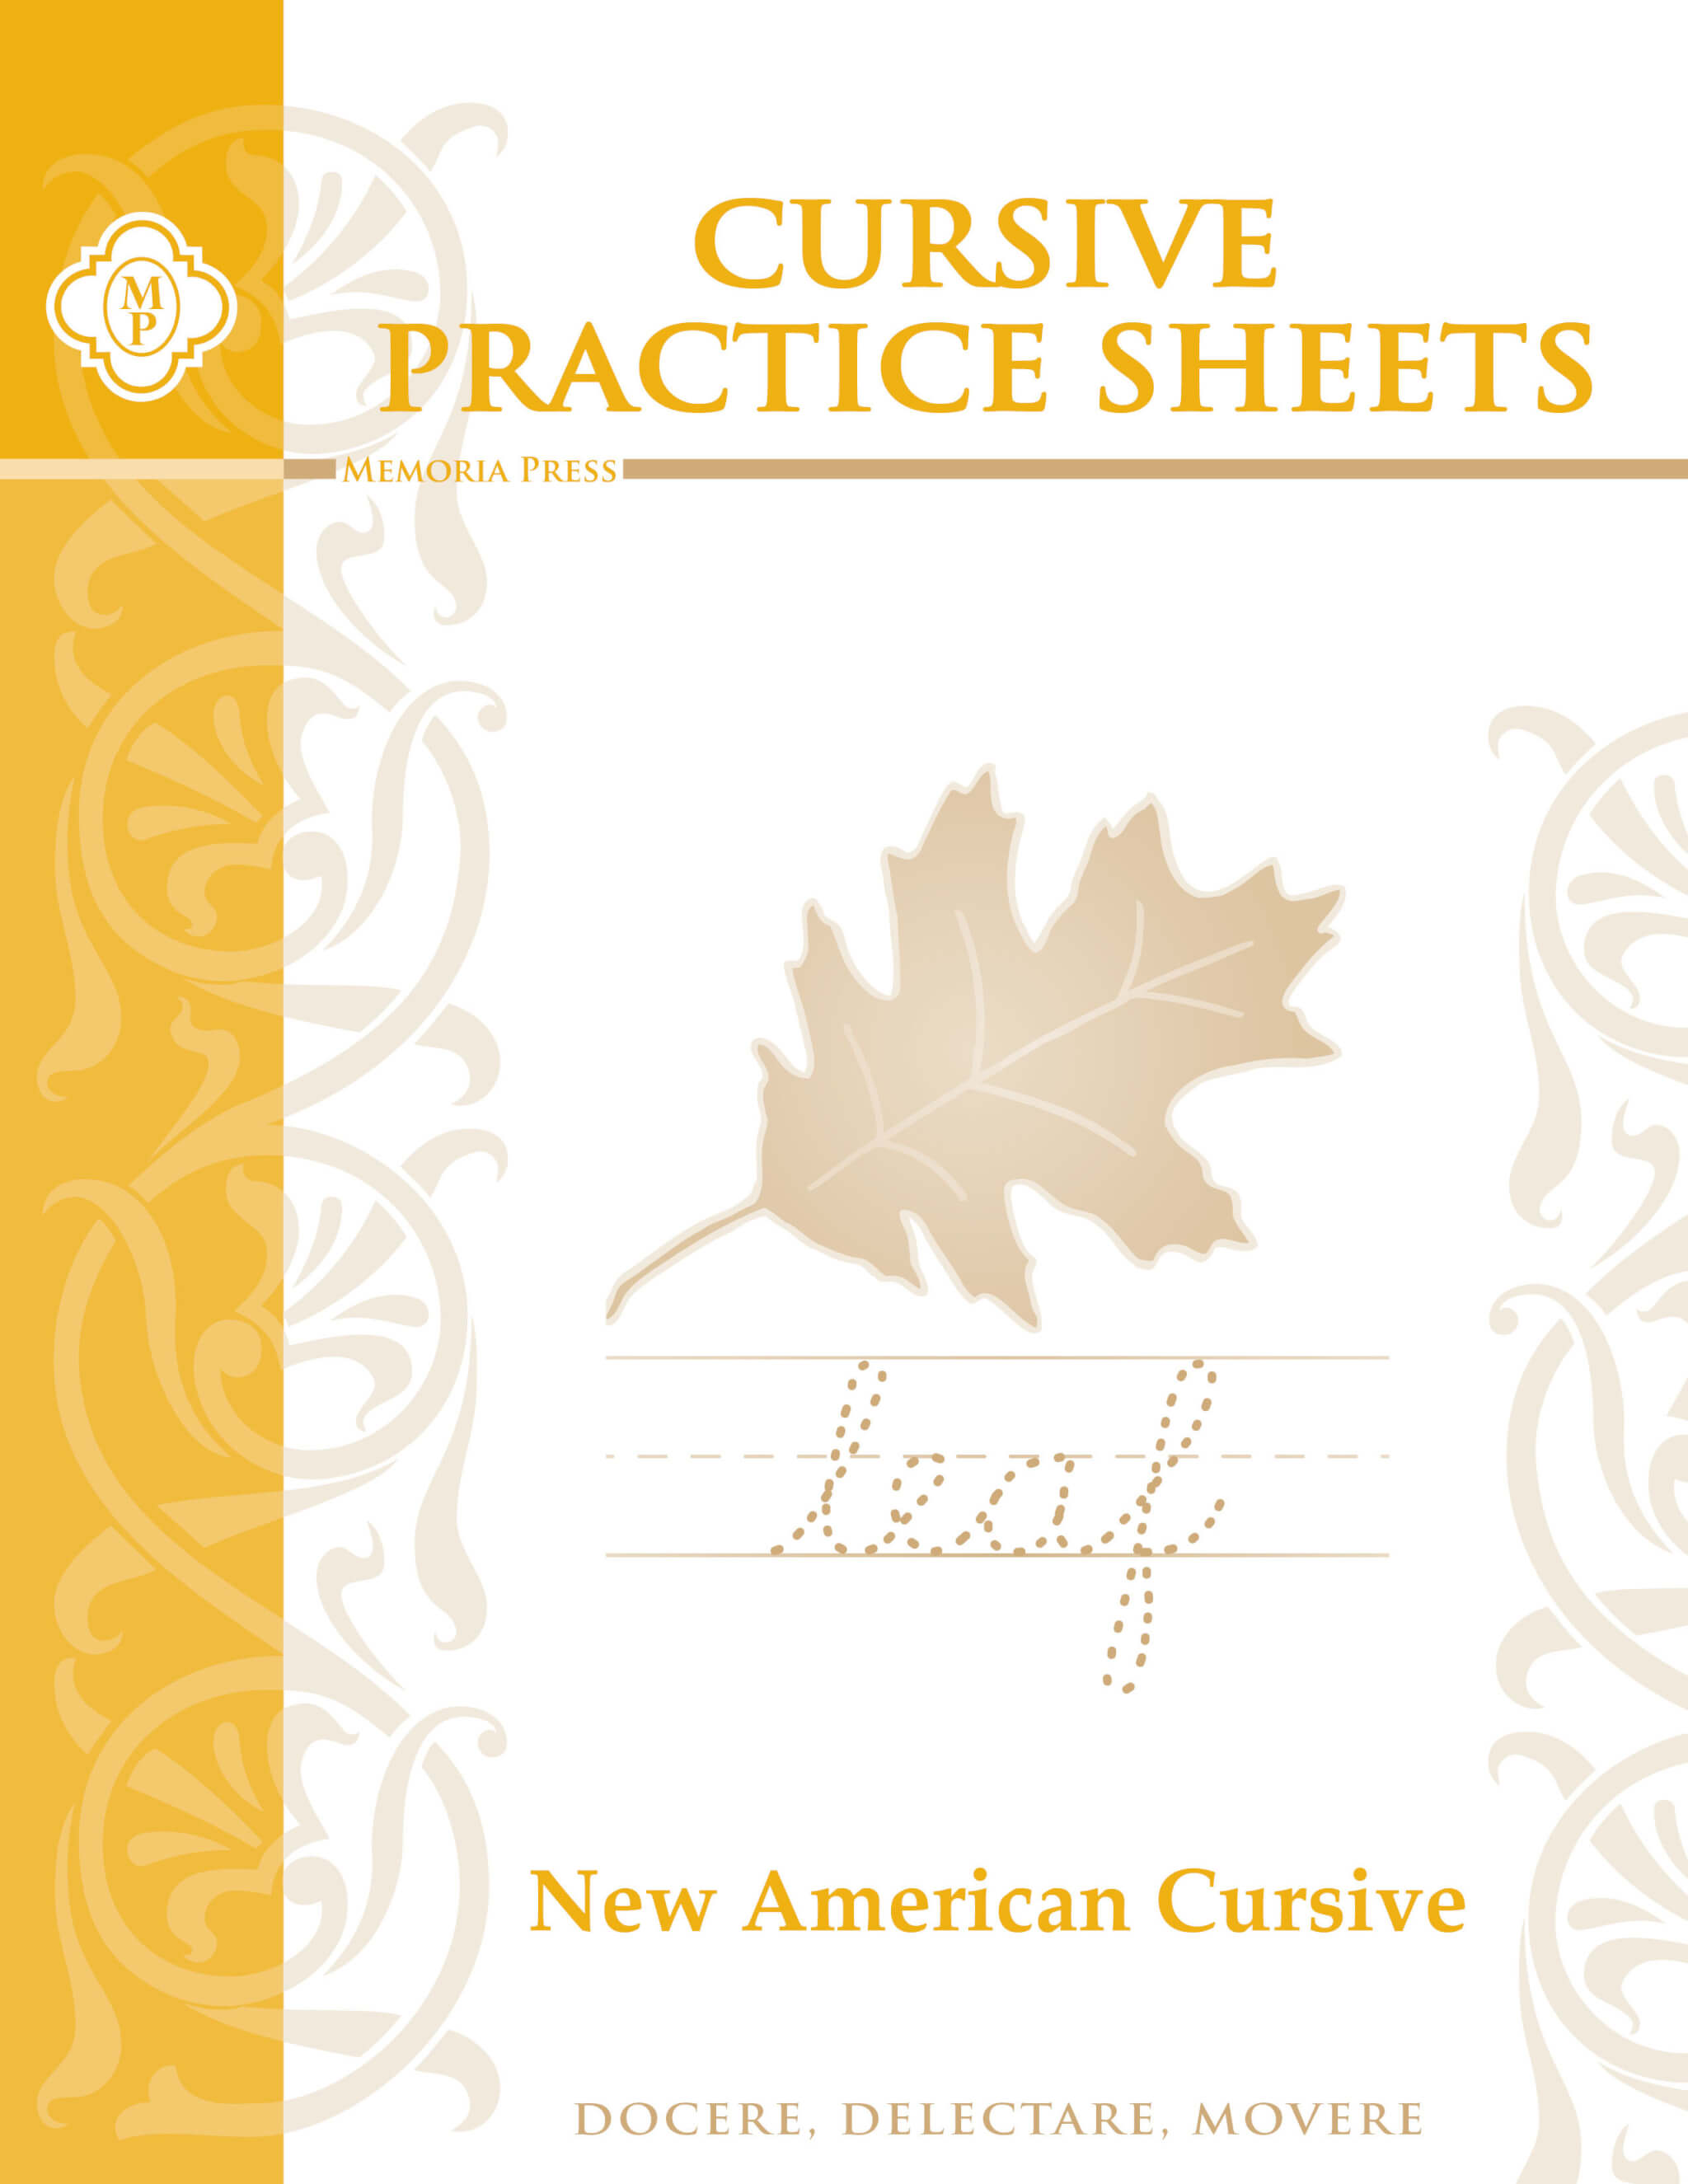 Cursive Practice Sheets Memoria Press